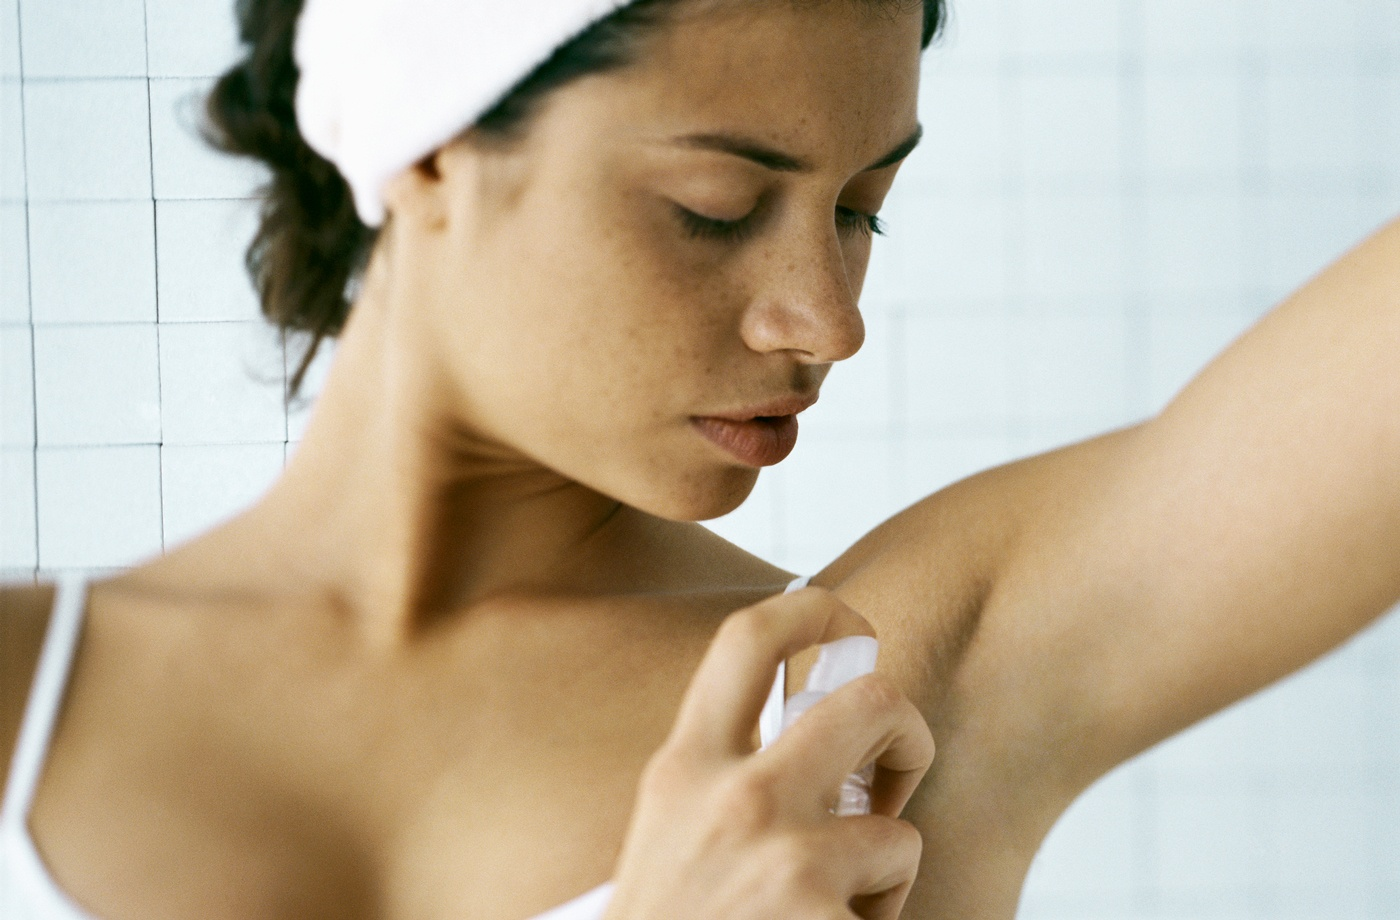 Thumbnail for Stinky armpits are no match for these editor-approved, aluminum-free deodorants